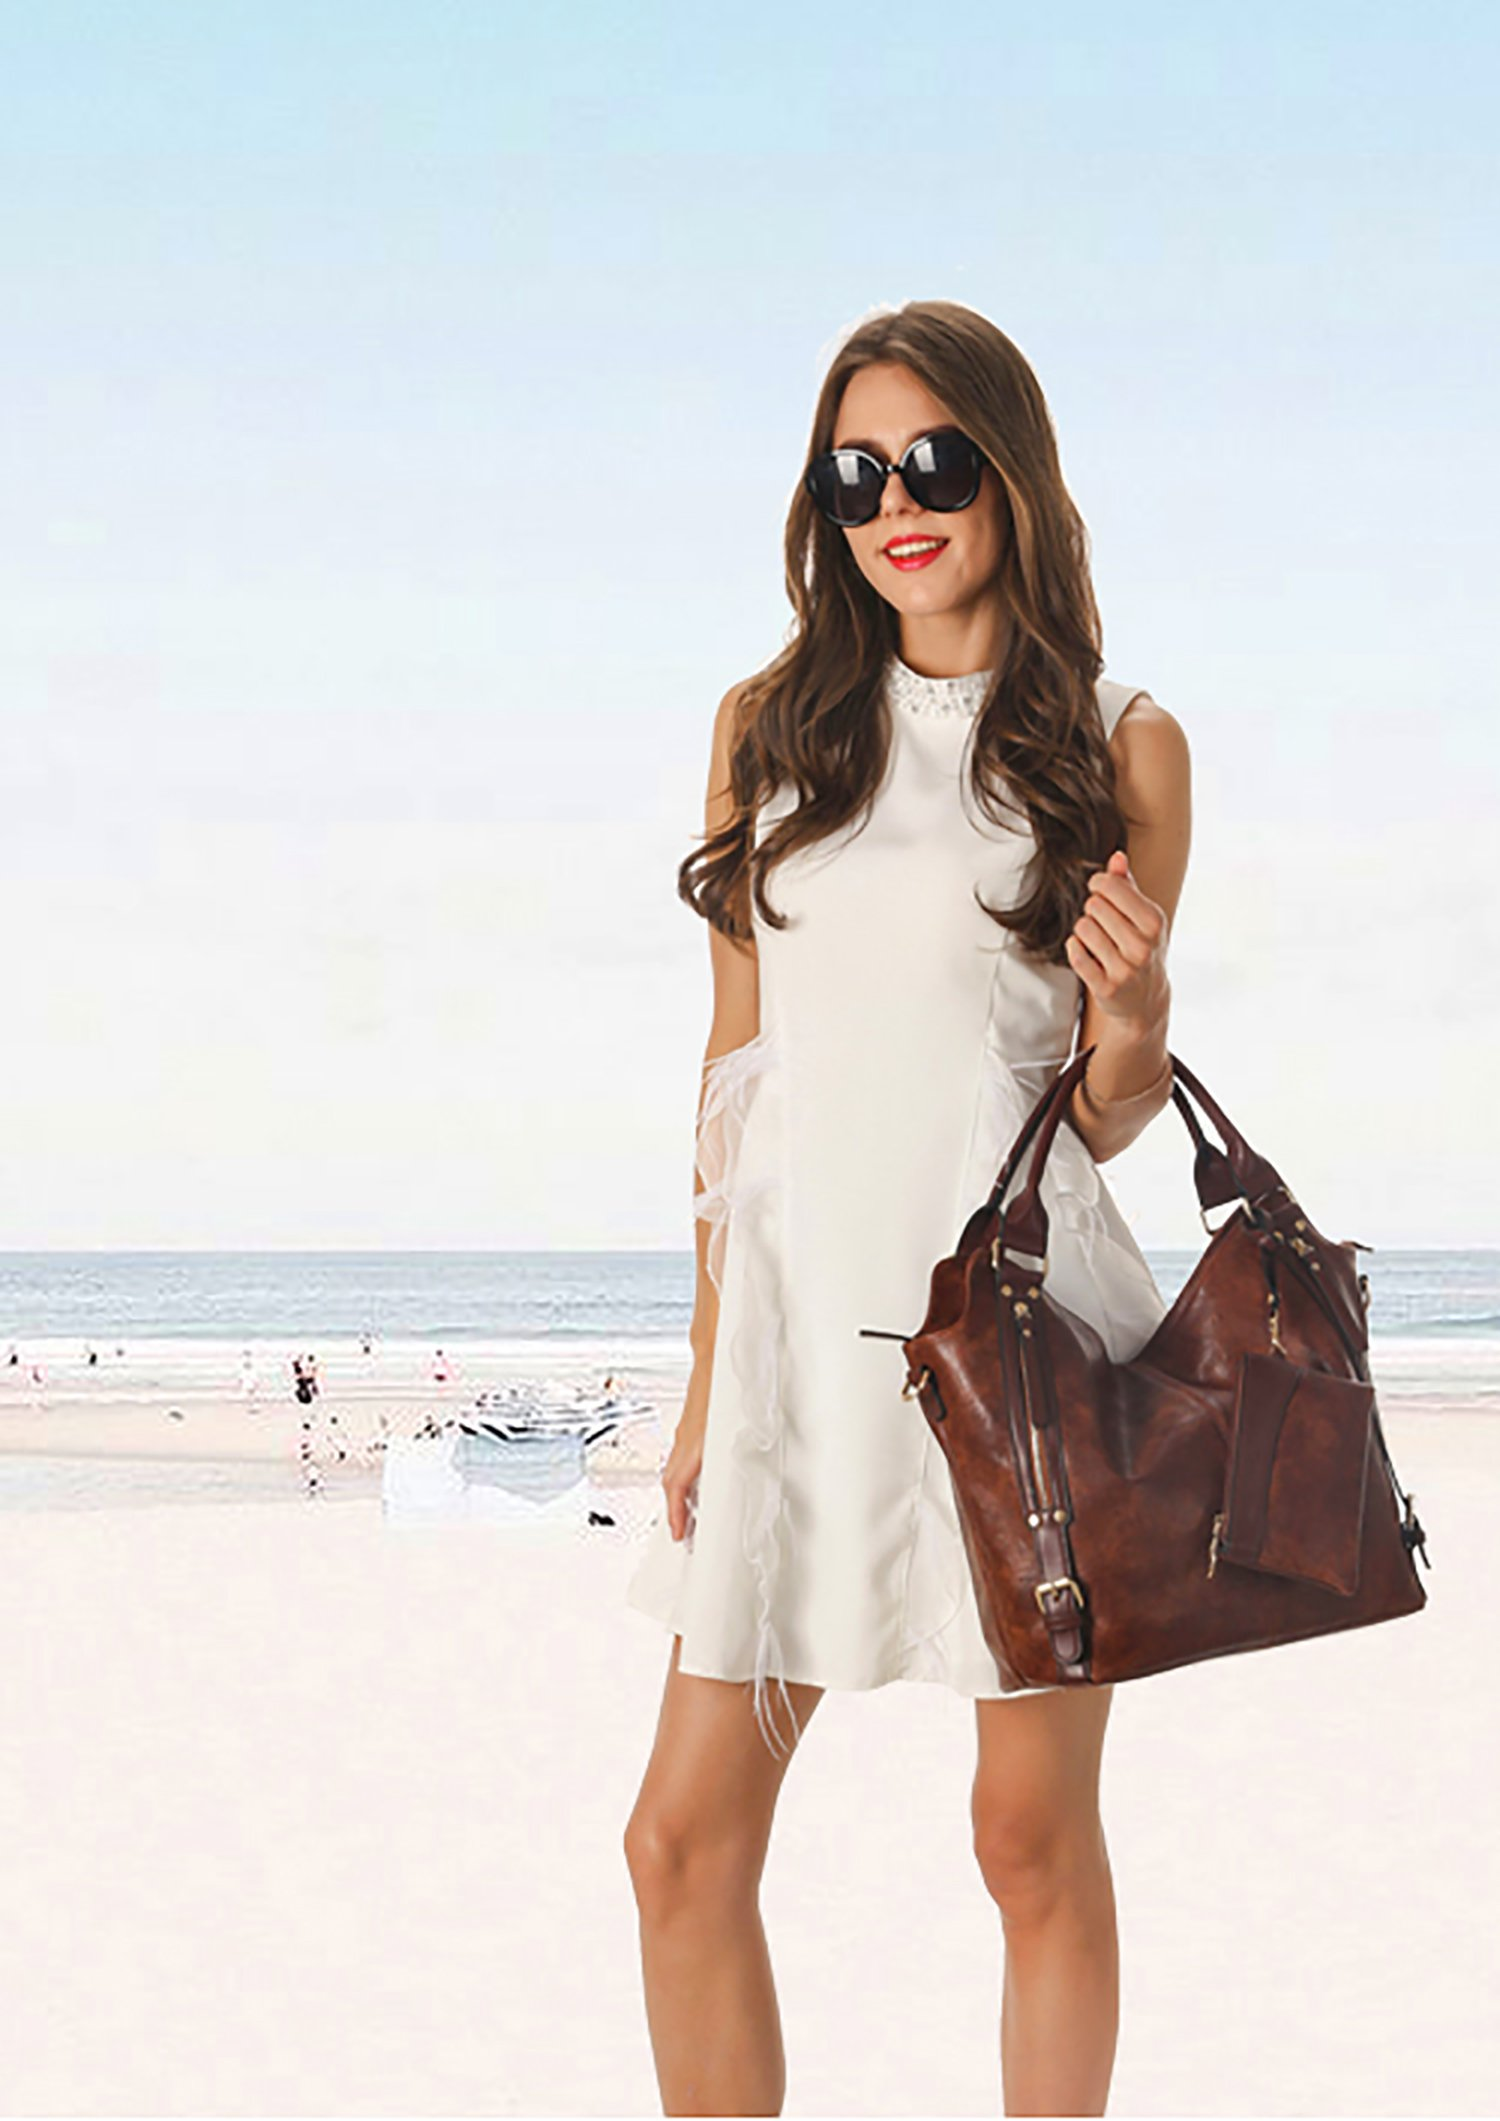 2018 HOT Women Tote Bag Handbags PU Leather Fashion Large Capacity Hobo Shoulder Bags with Adjustable Shoulder Strap by ITSCOSY (Image #5)